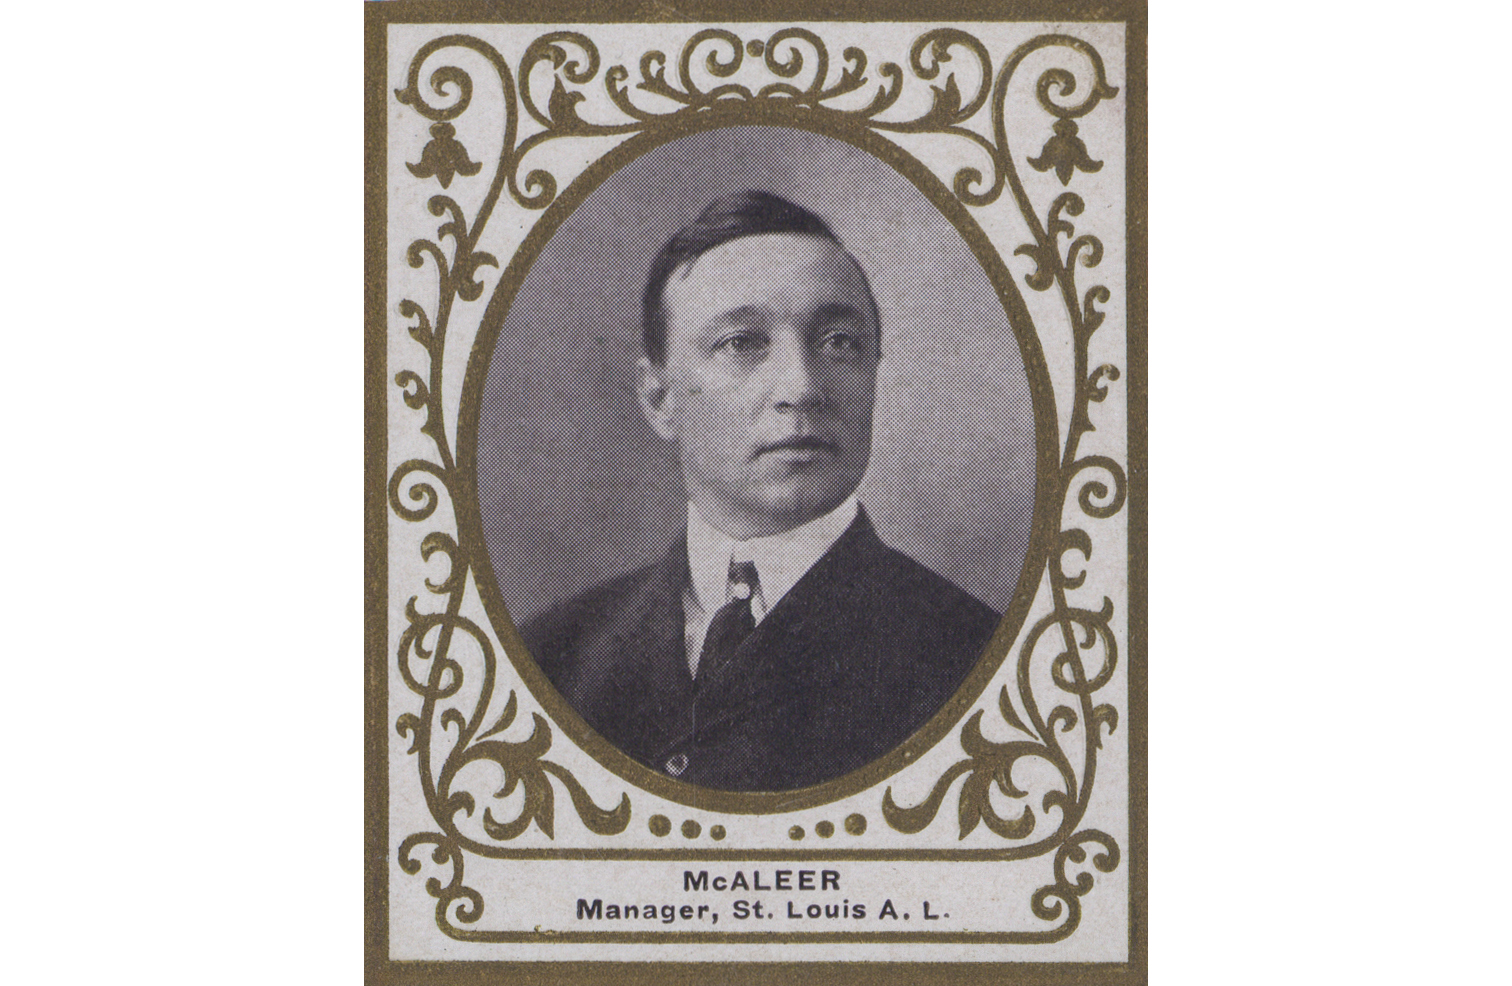 Jimmy McAleer, from a 1909 Ramly tobacco baseball card.